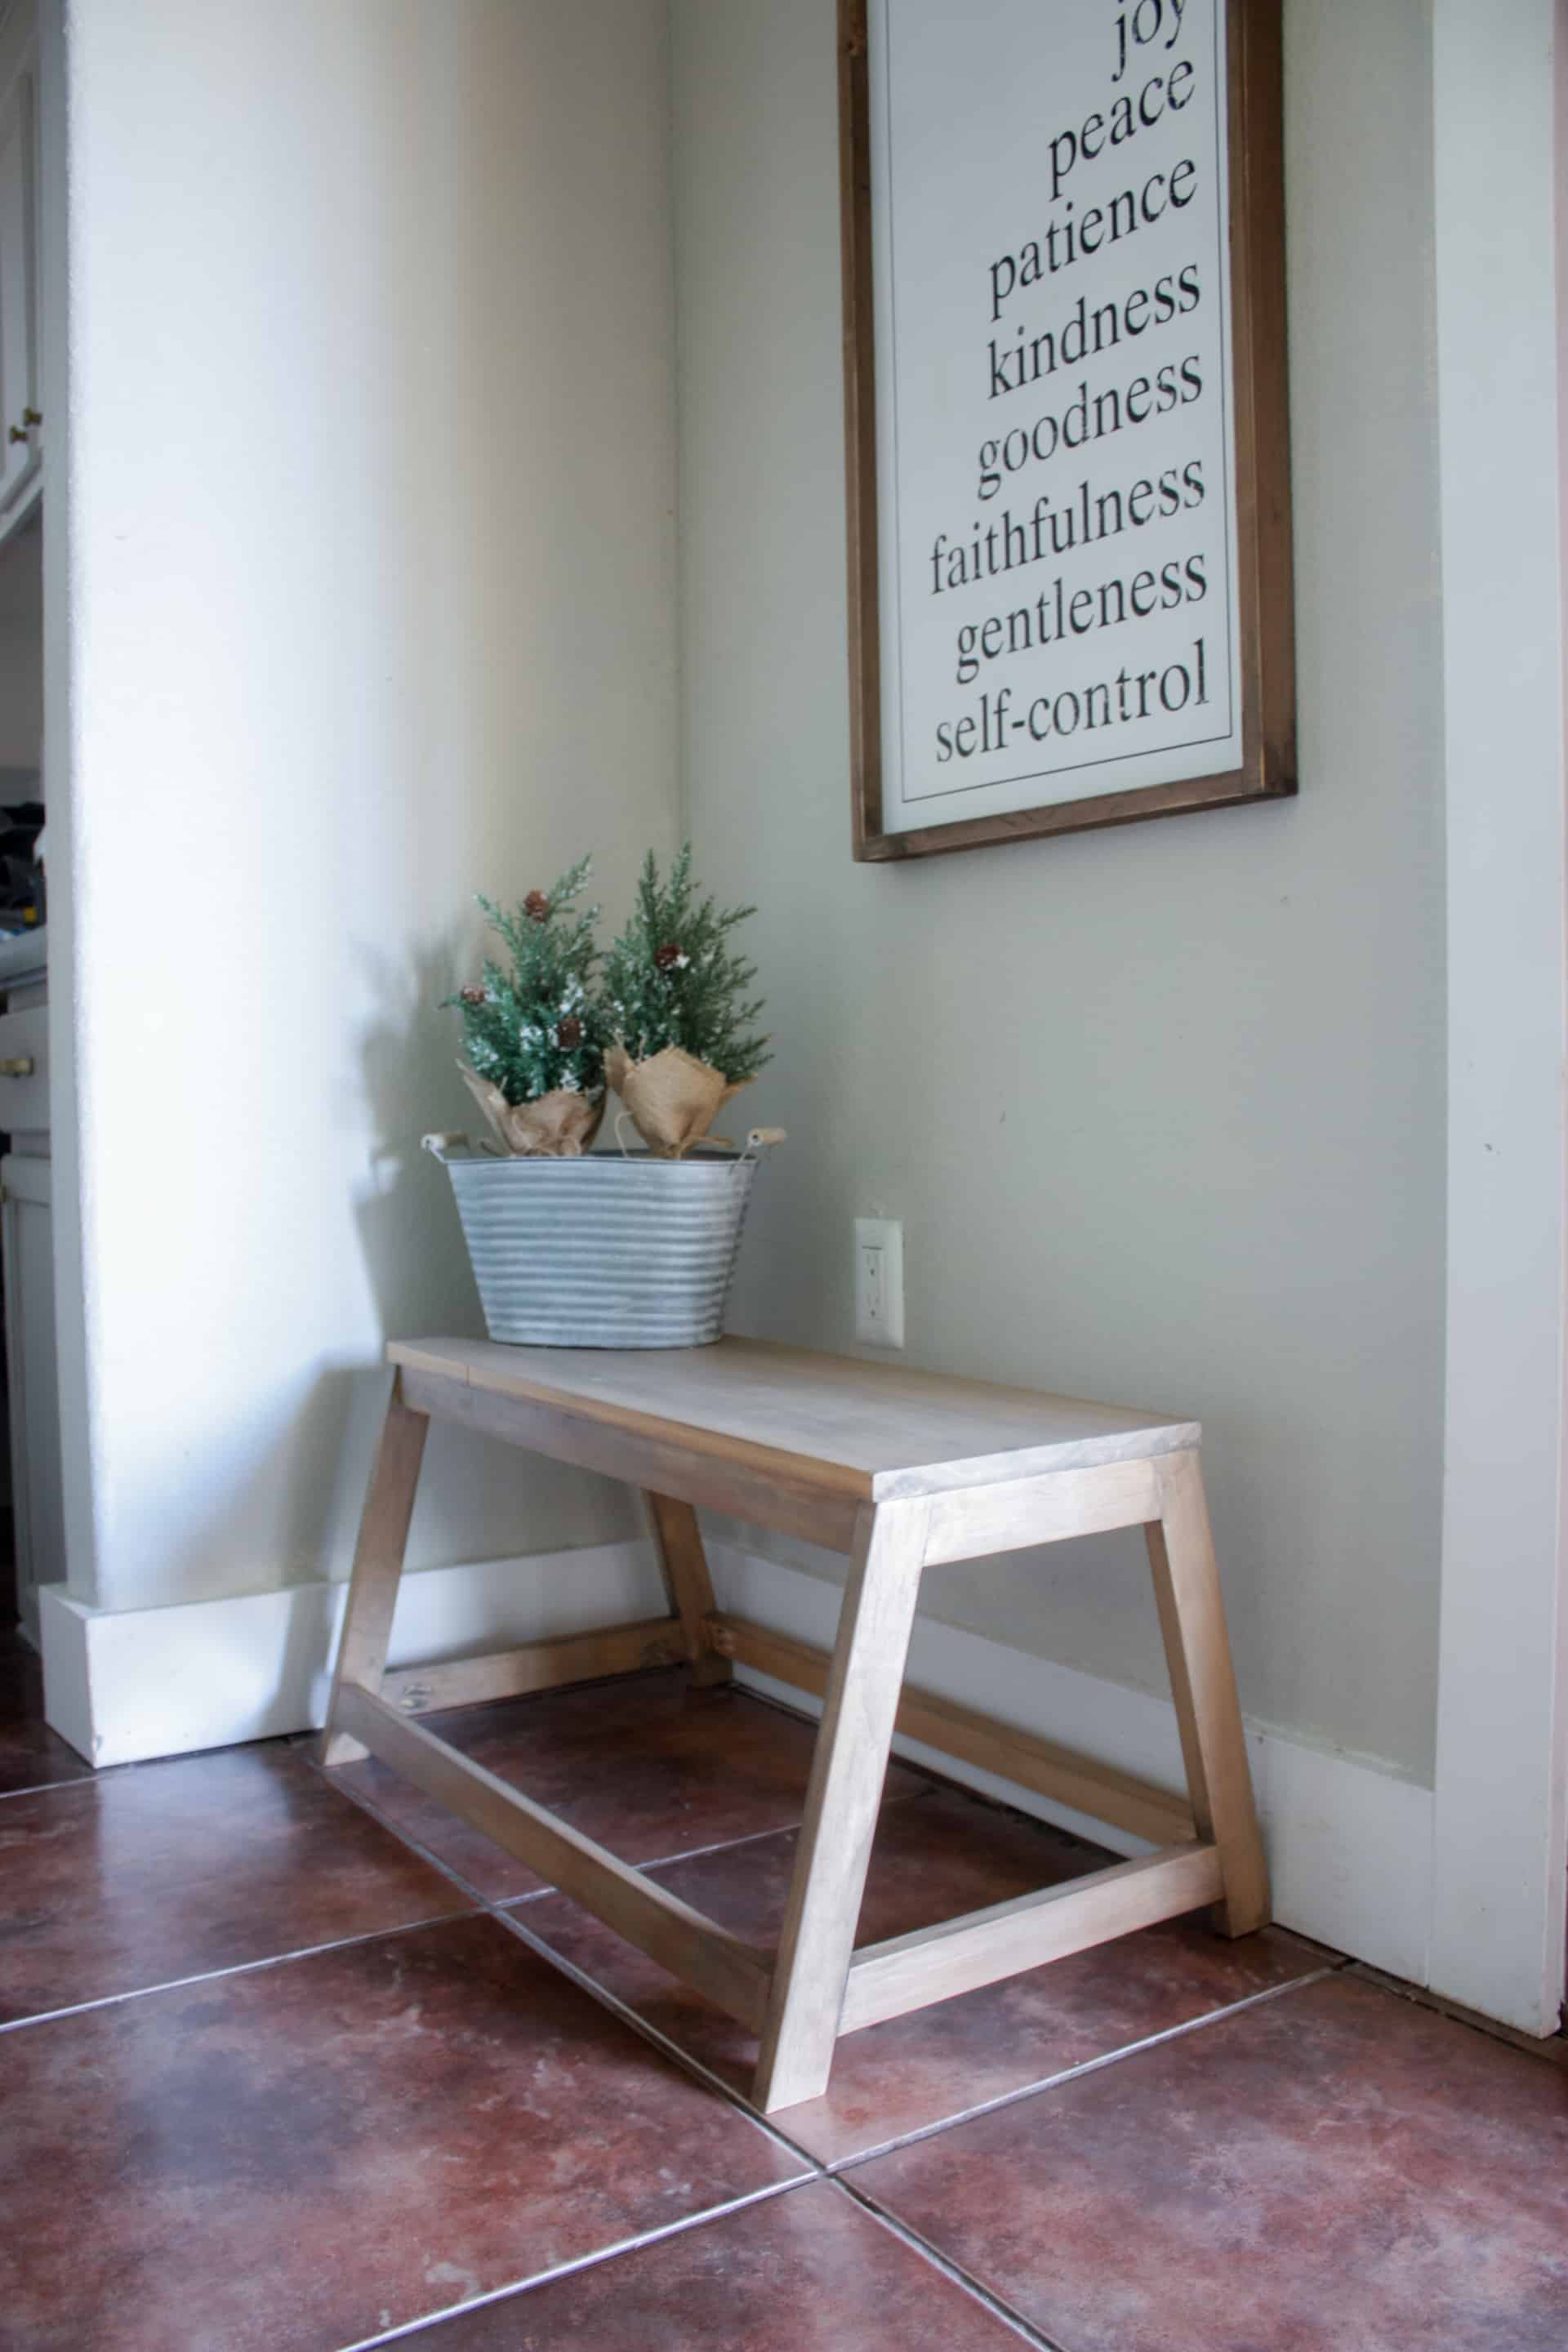 Admirable Diy Small Modern Bench The Inspired Workshop Inzonedesignstudio Interior Chair Design Inzonedesignstudiocom